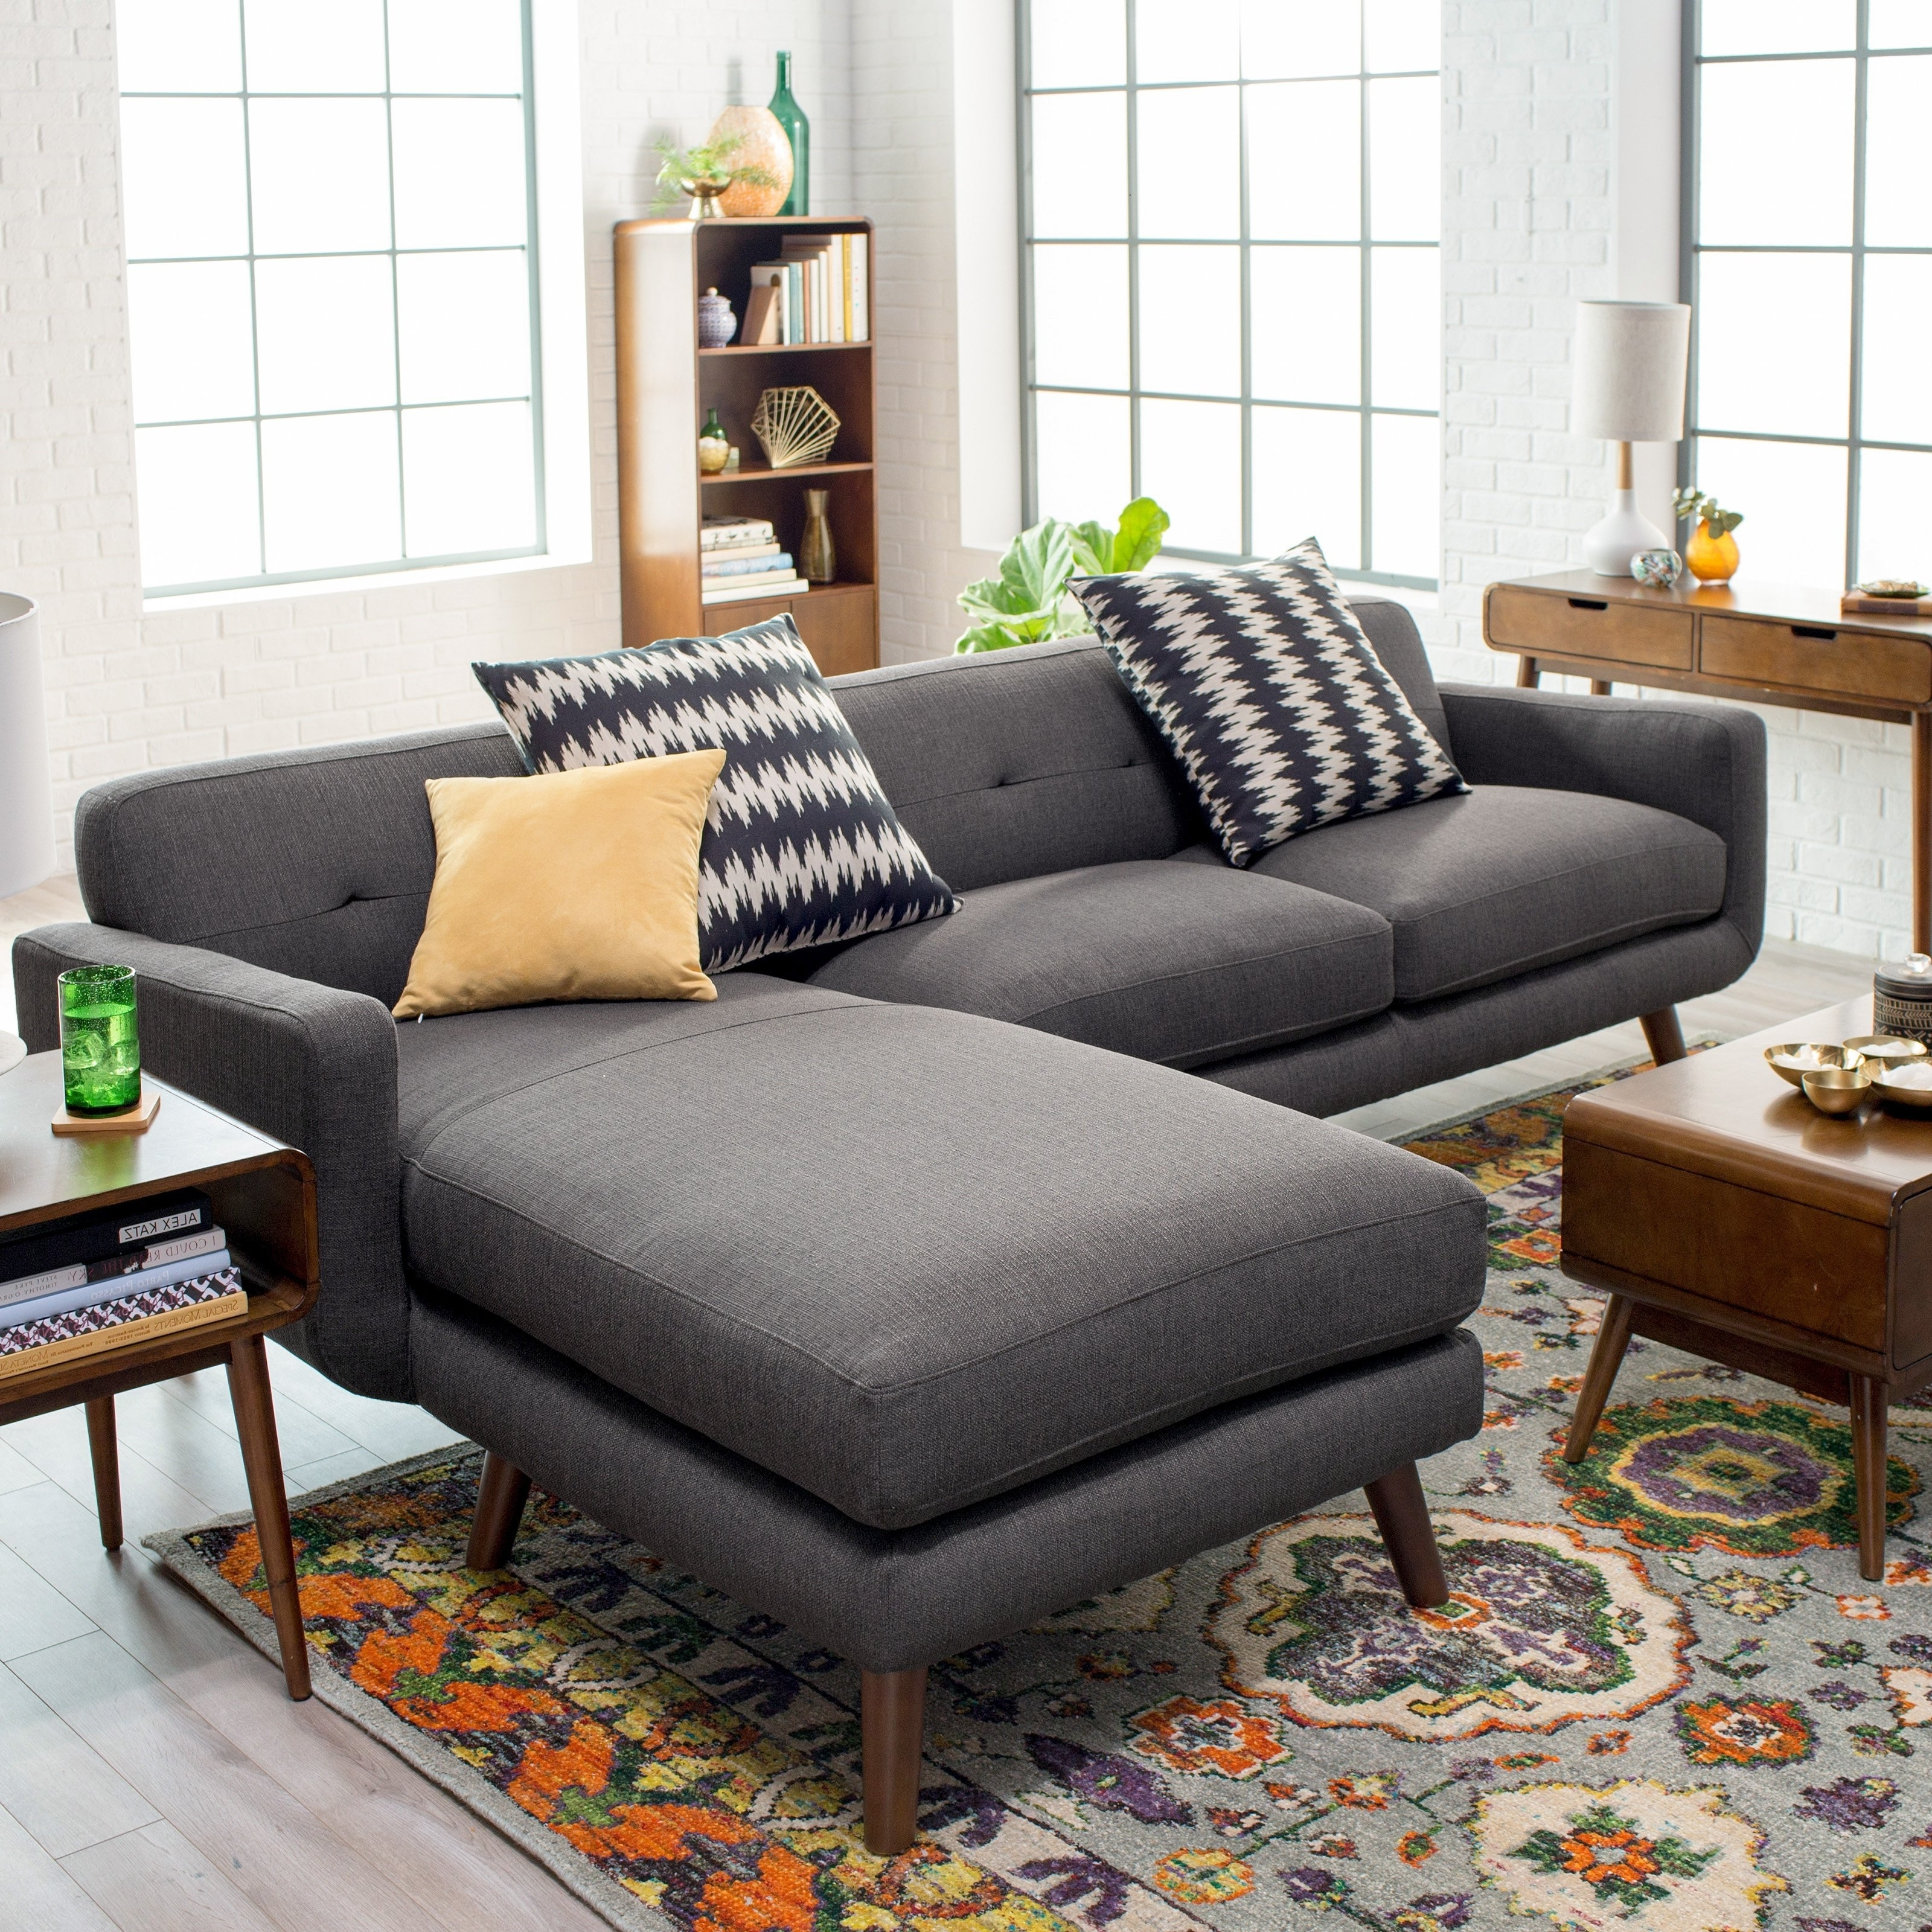 Favorite Living Room Furniture : Sectional Sofas For Small Spaces Sectional Within Small Sectional Sofas For Small Spaces (View 6 of 15)